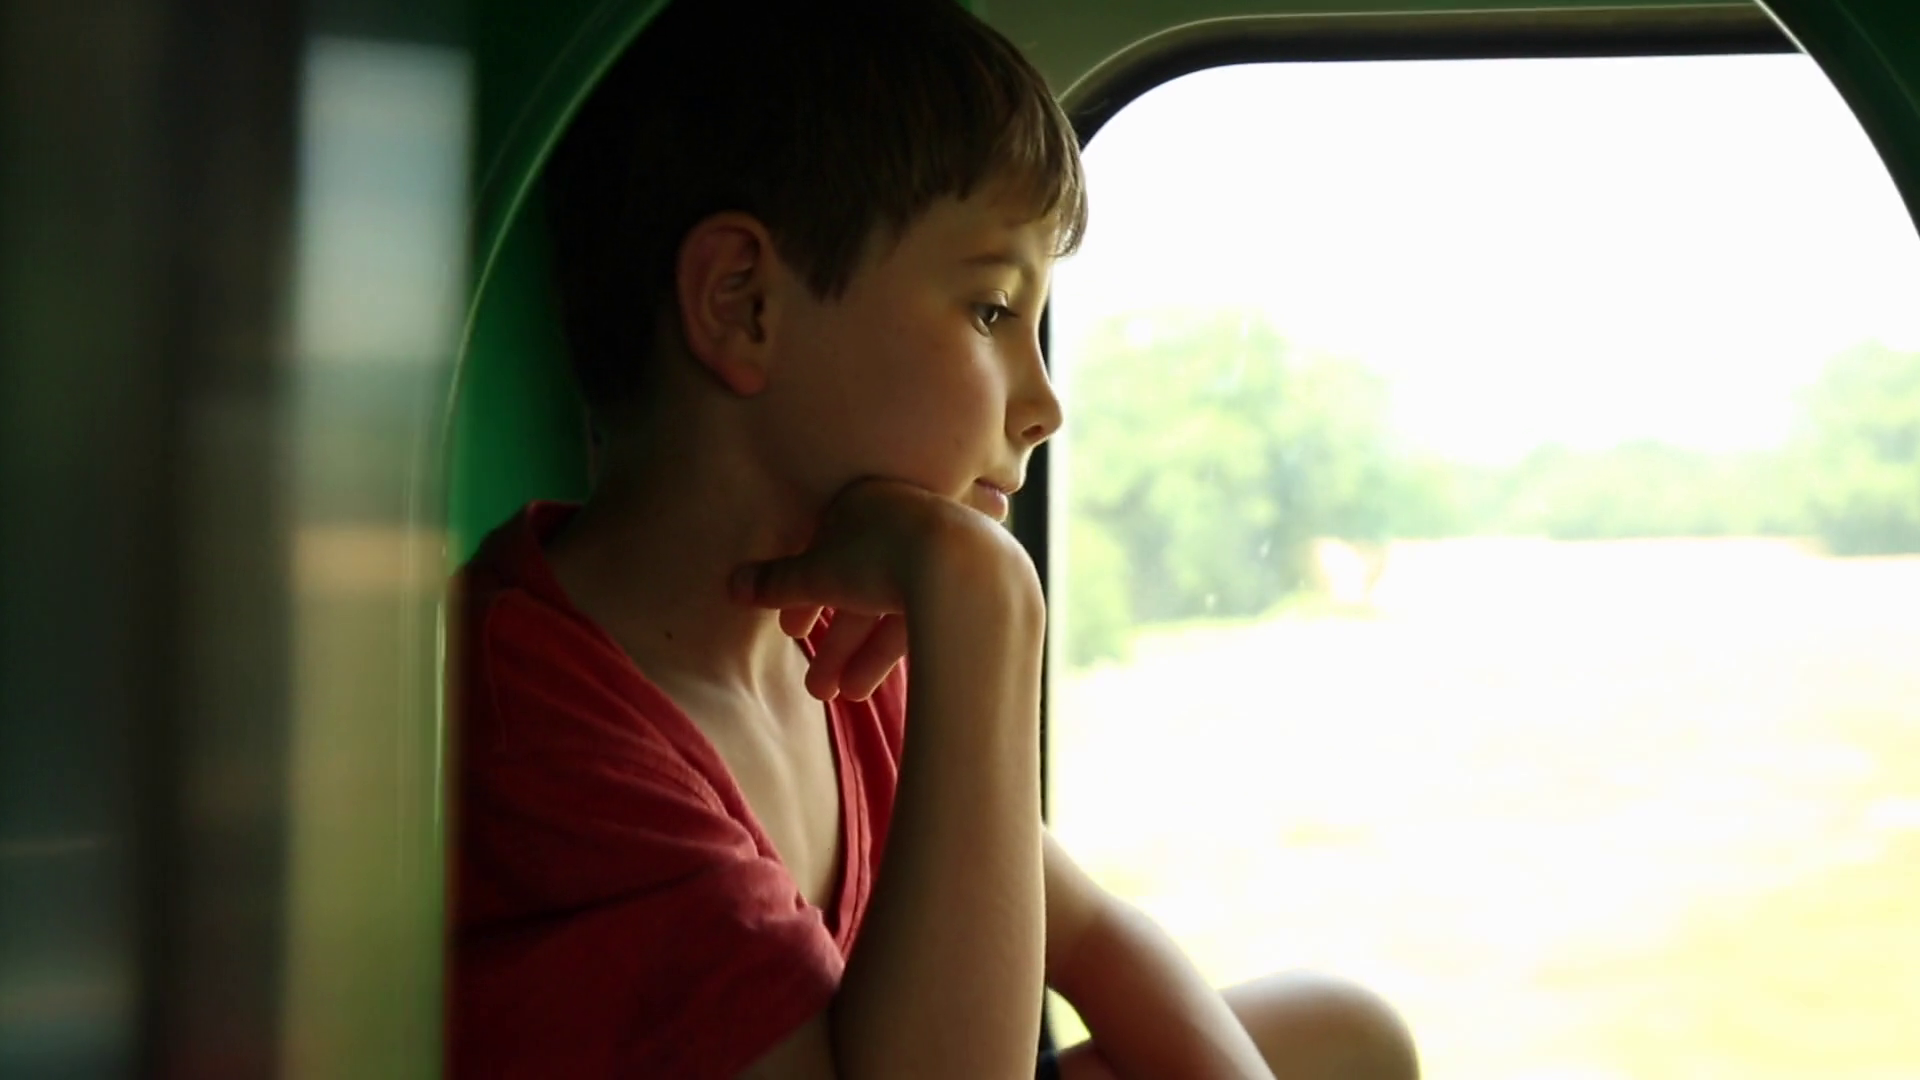 Contemplative child daydreaming while looking out train window. Kid looking  out train window thinking with a thoughtful look on face.